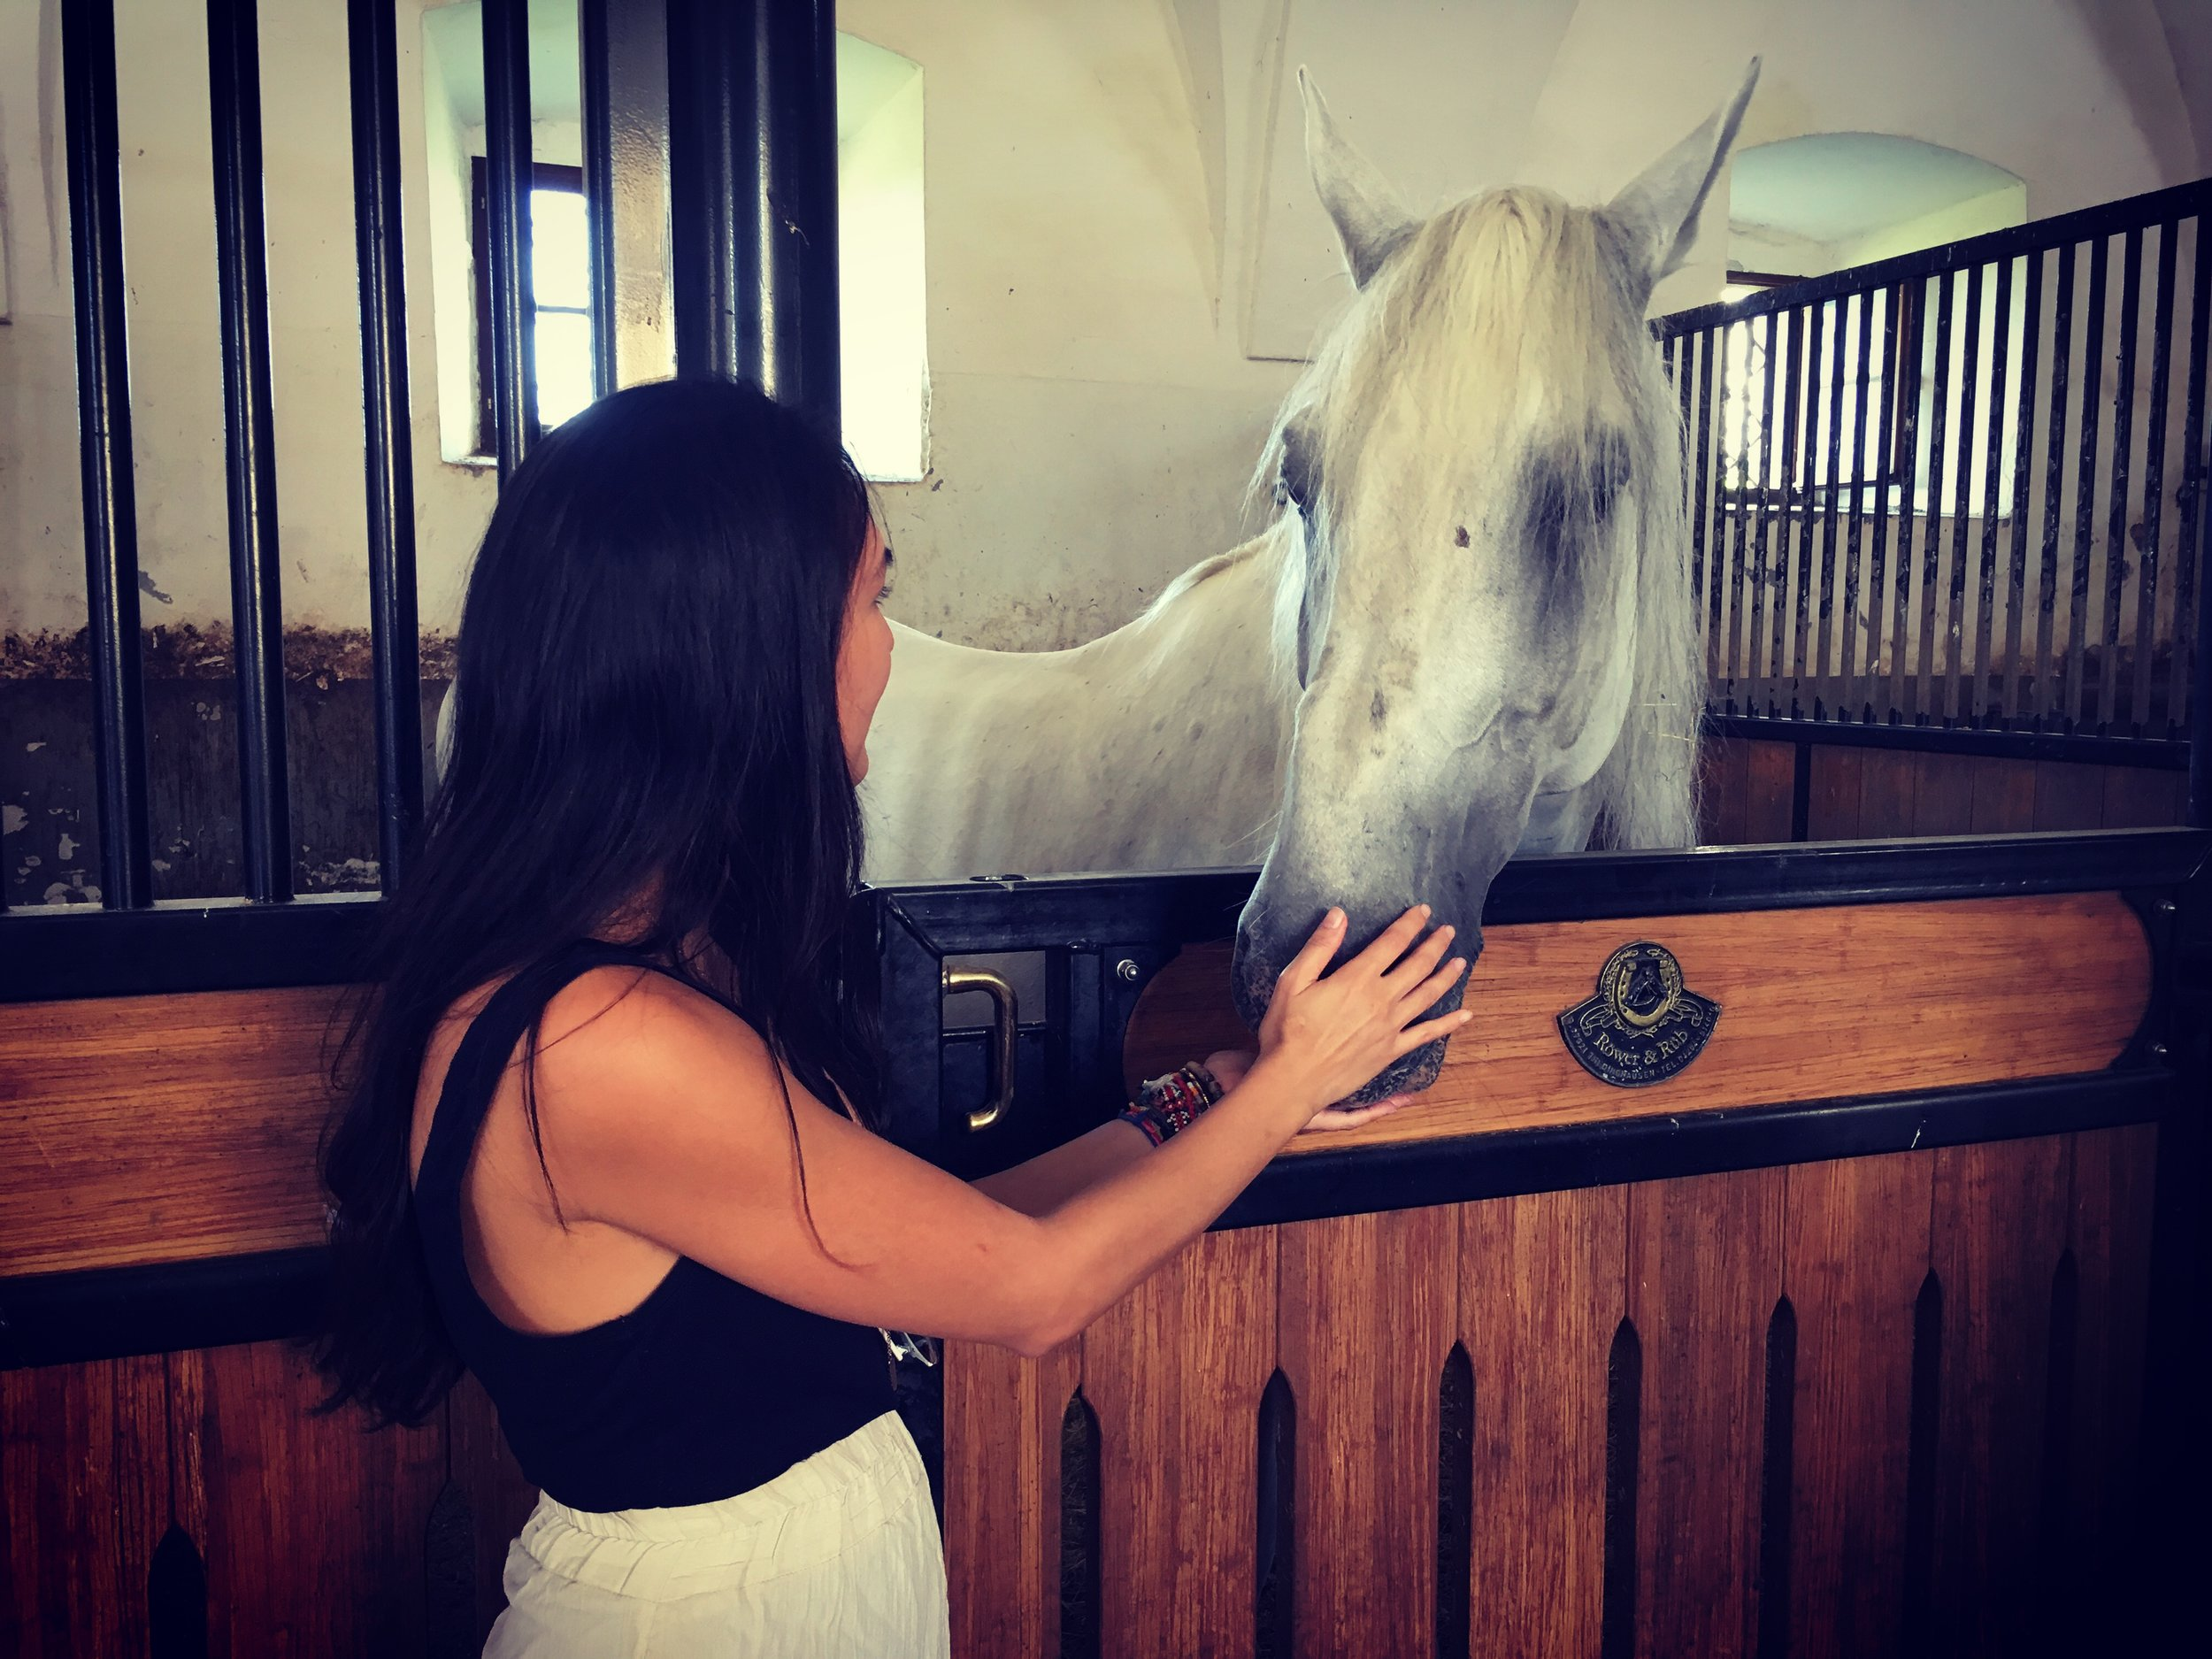 Bonding with this beauty named Pluto at Lipica Stud Farm, the oldest in the country, operating since 1580.